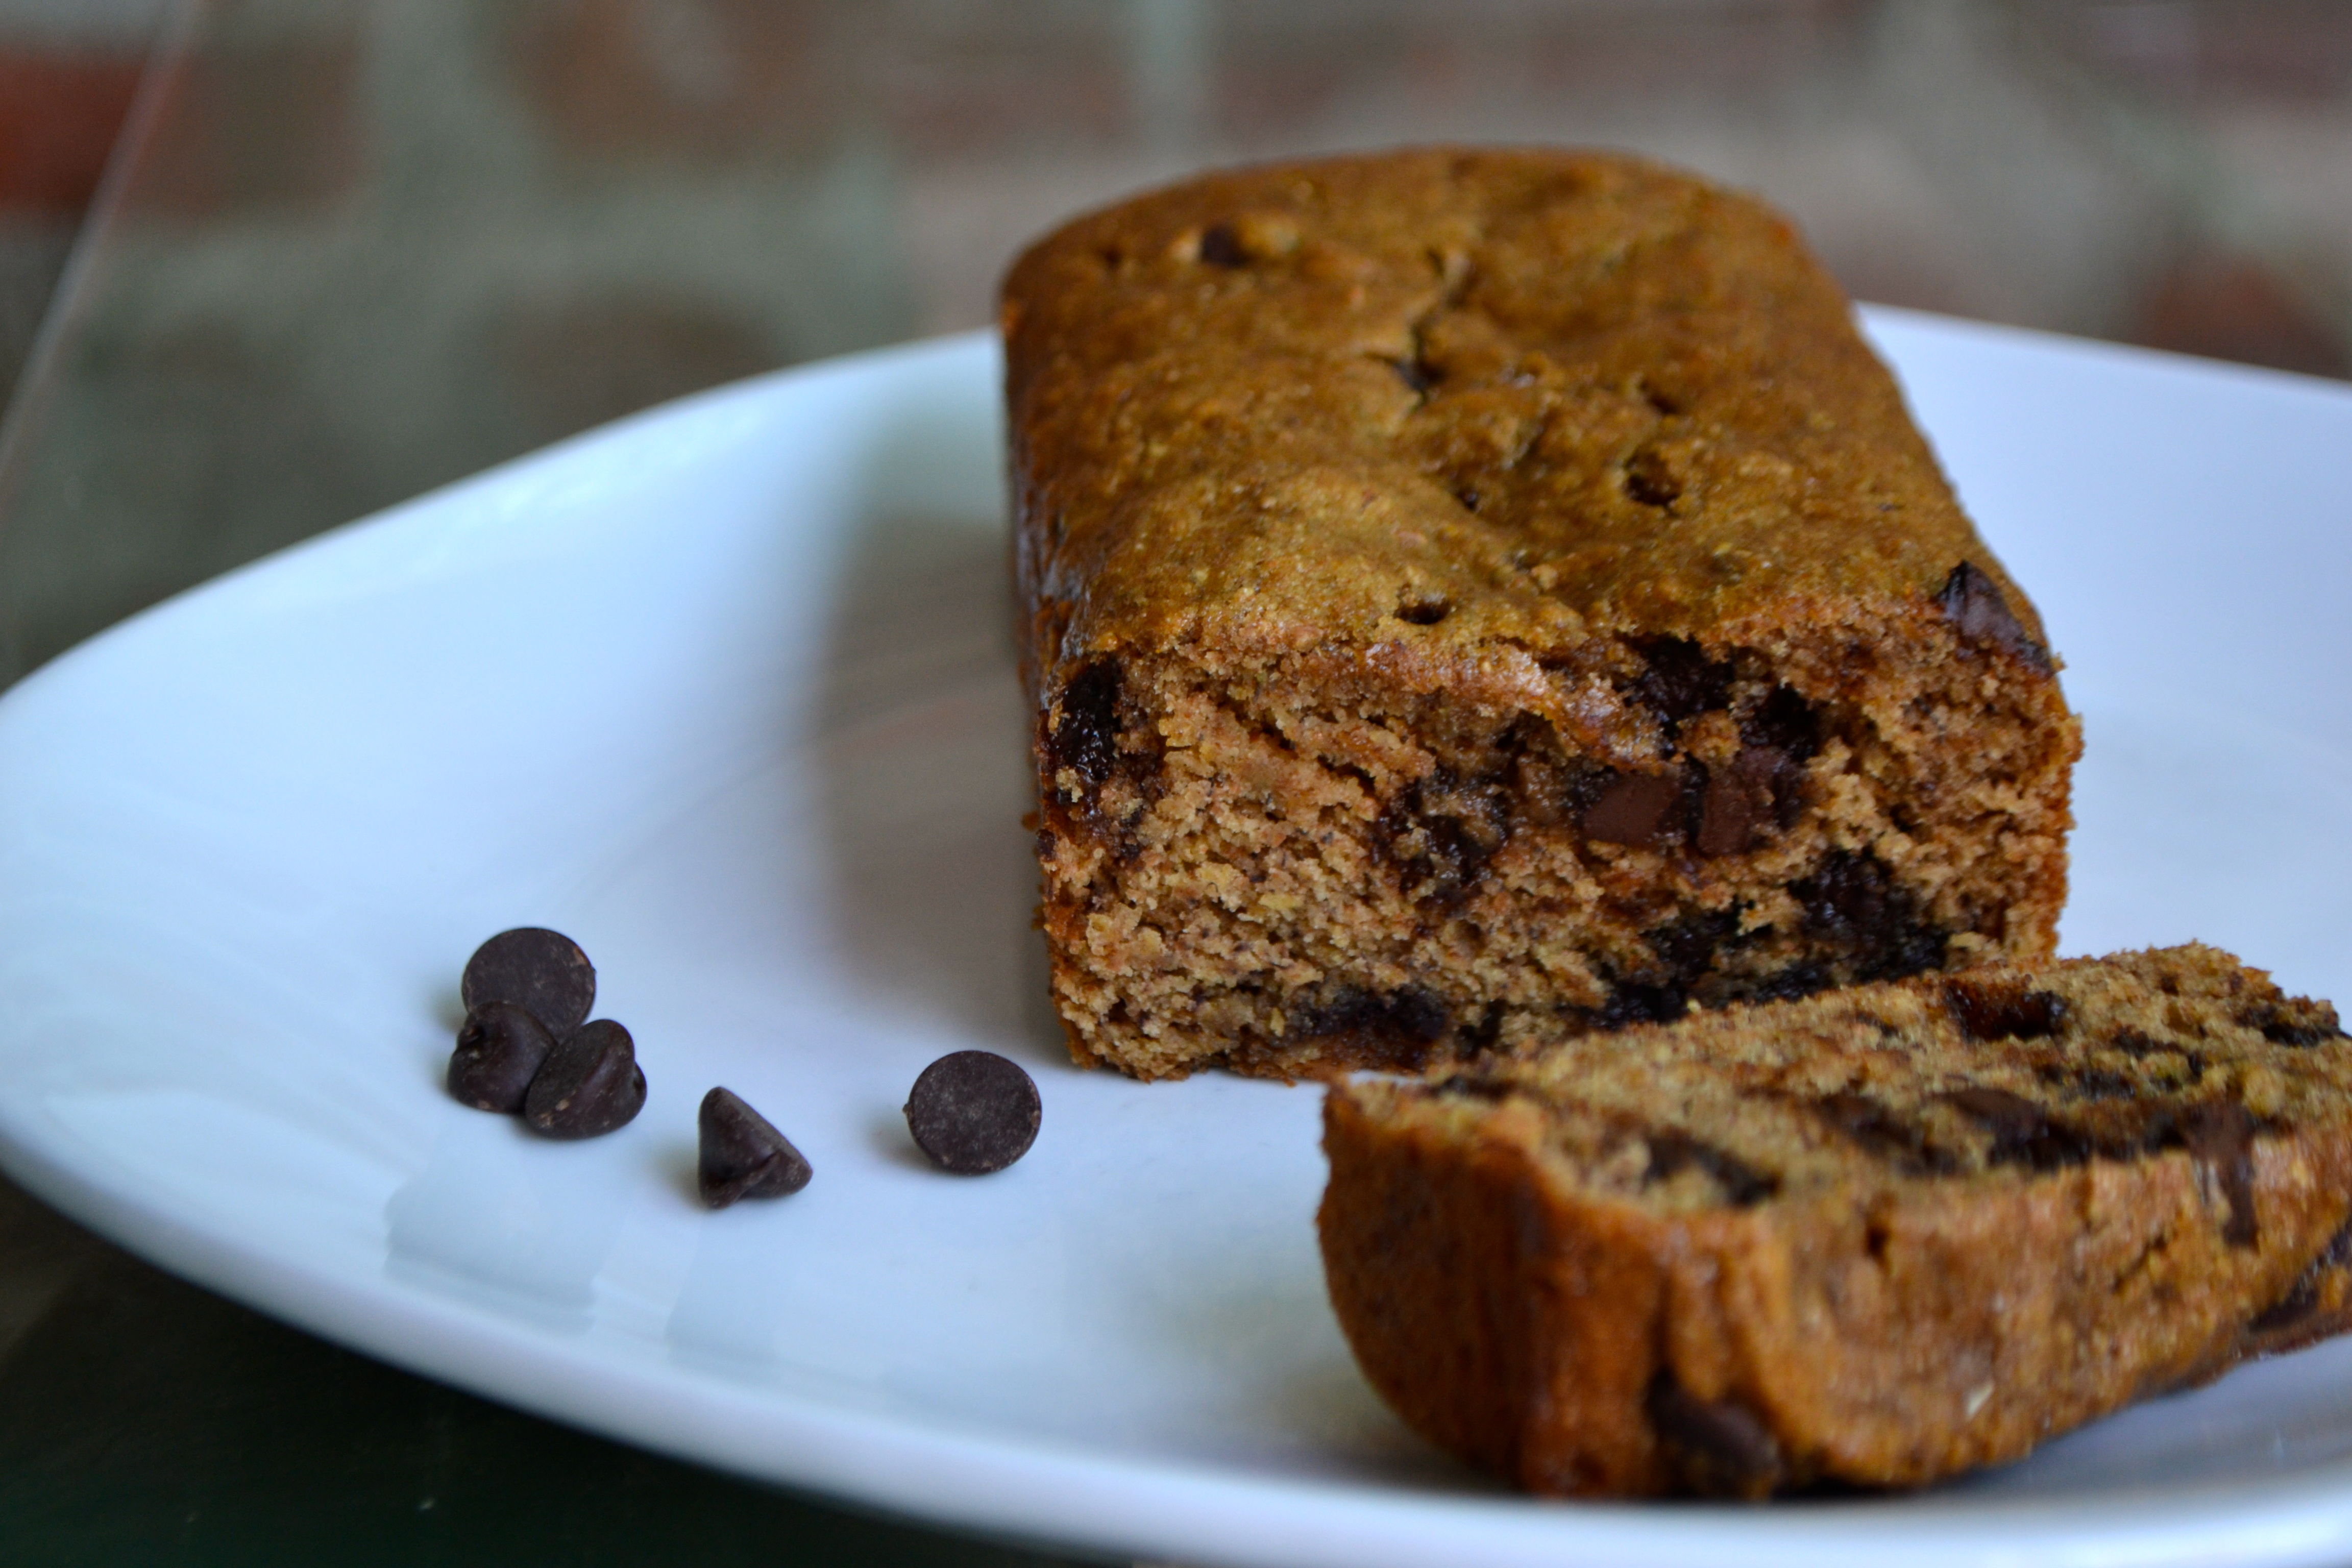 (Skinny) Chocolate Chip Banana Bread – a rented kitchen